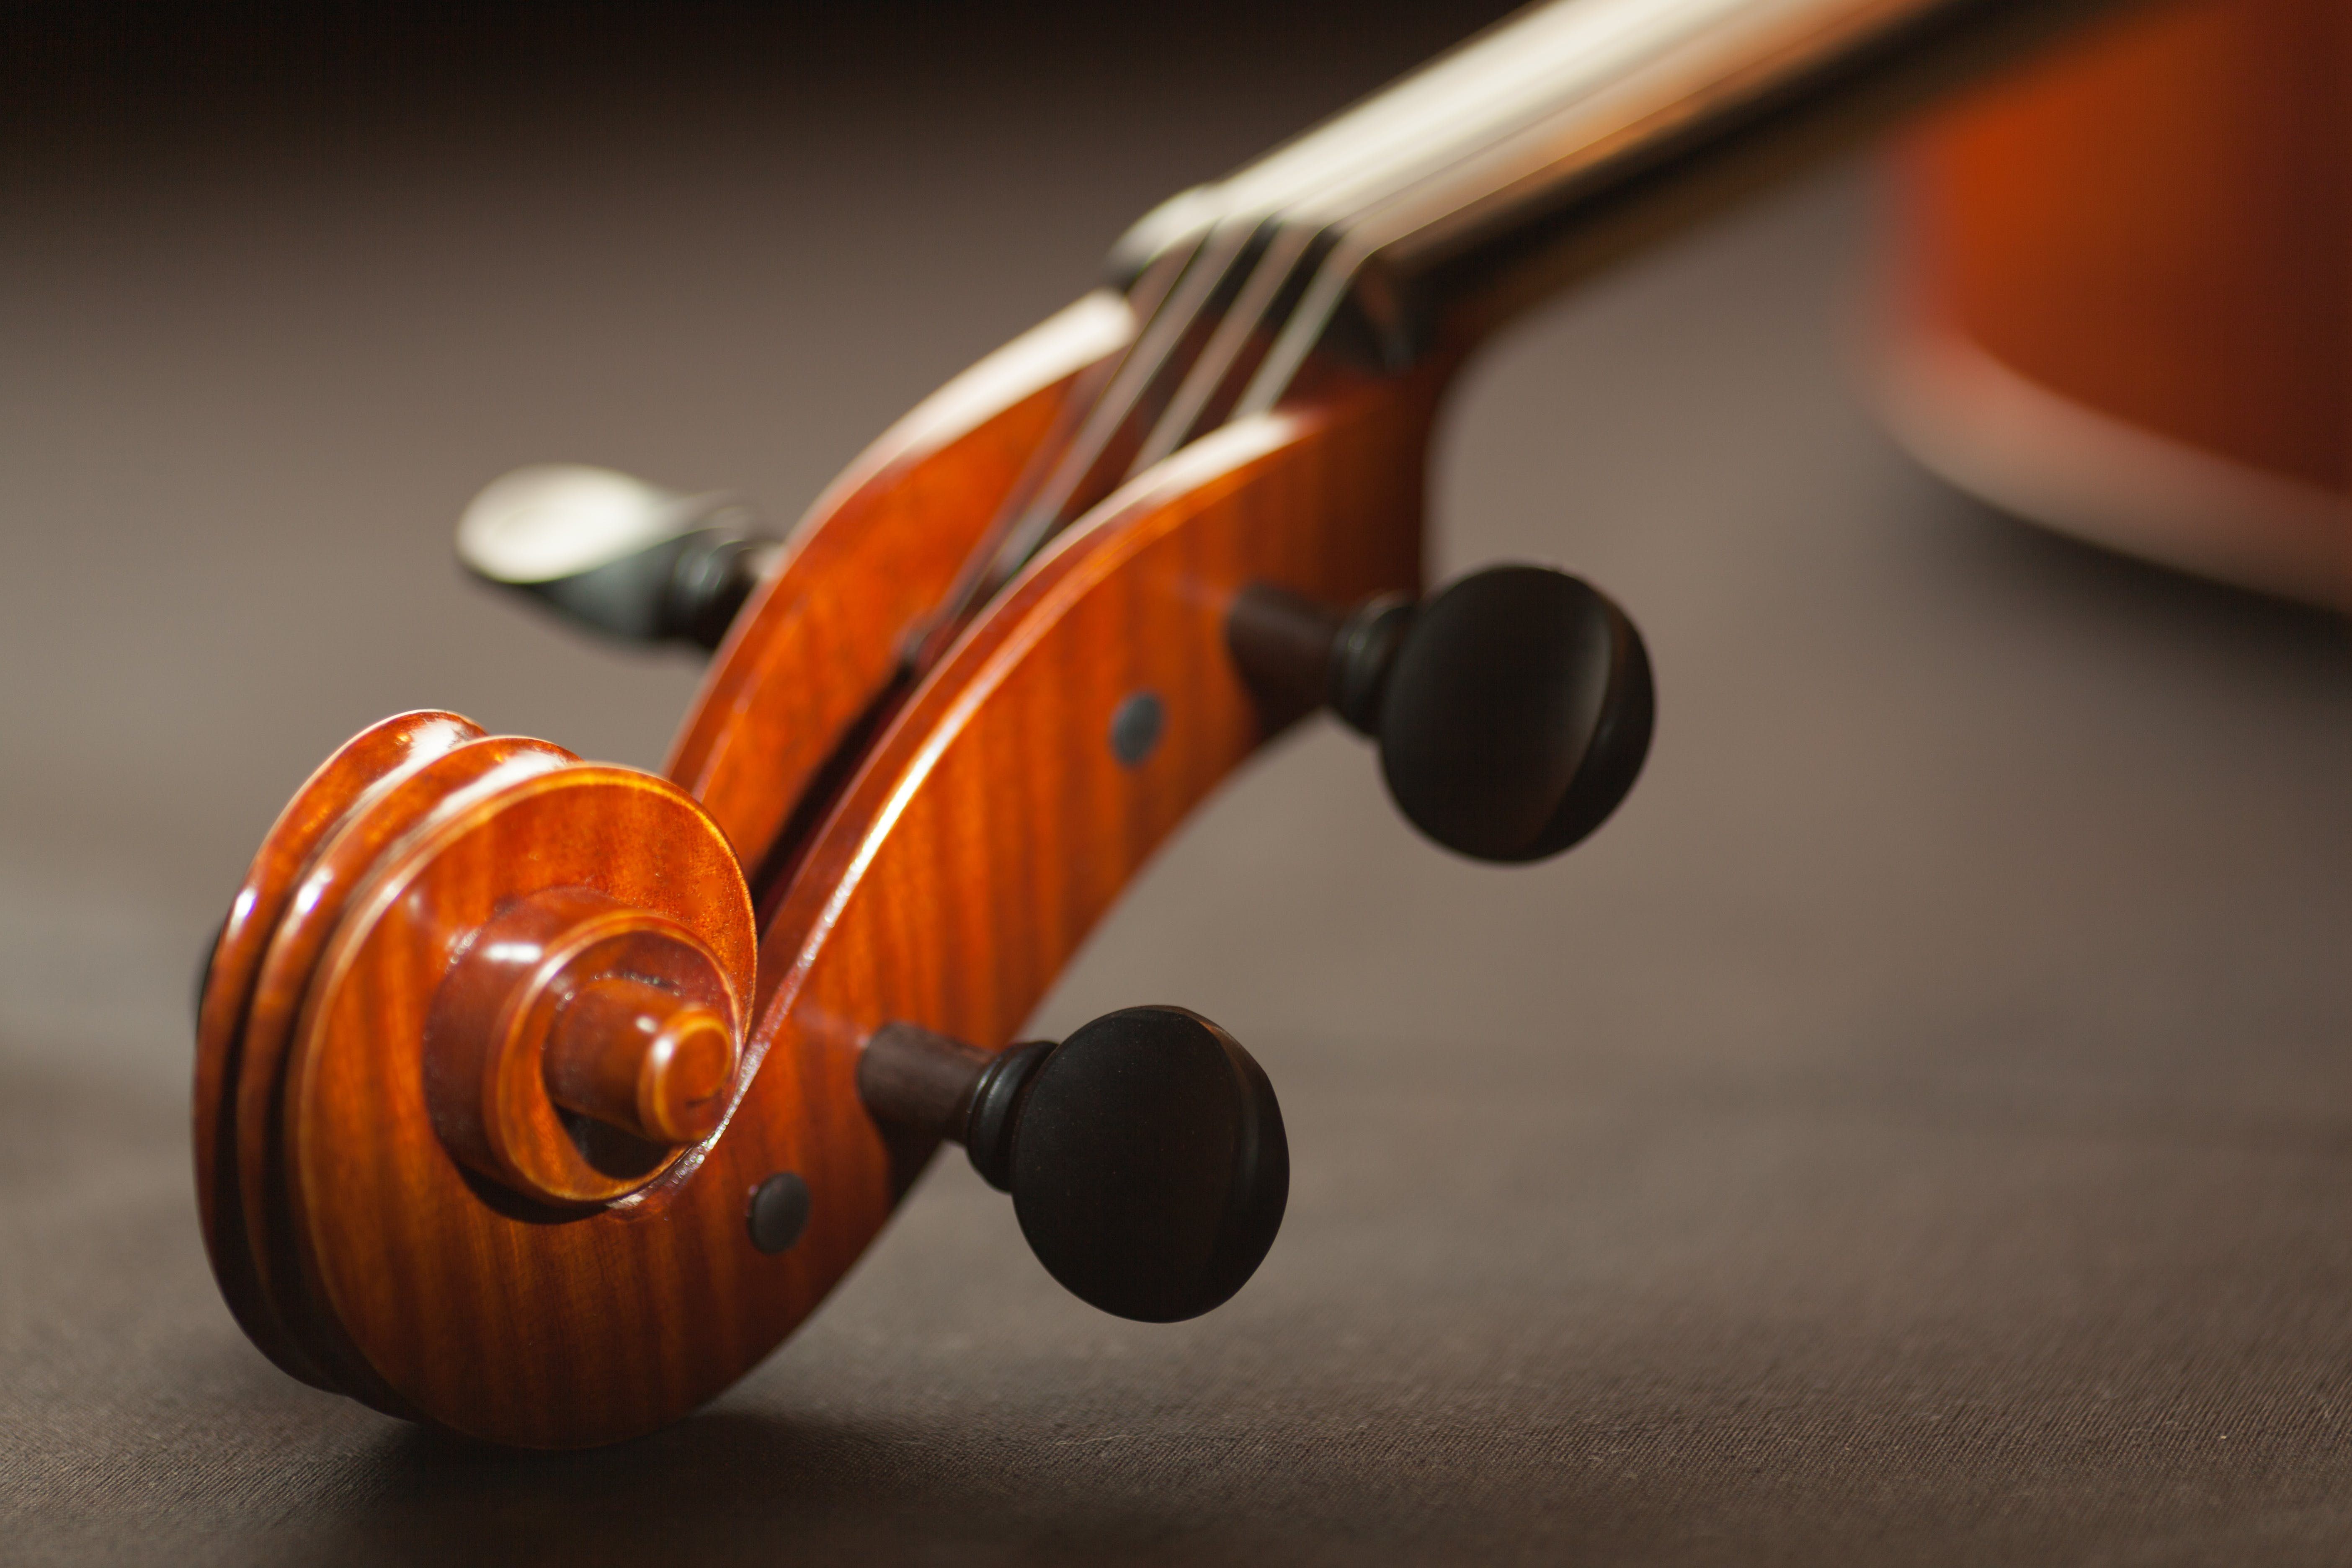 Brown String Instrument Selective Focus Photography